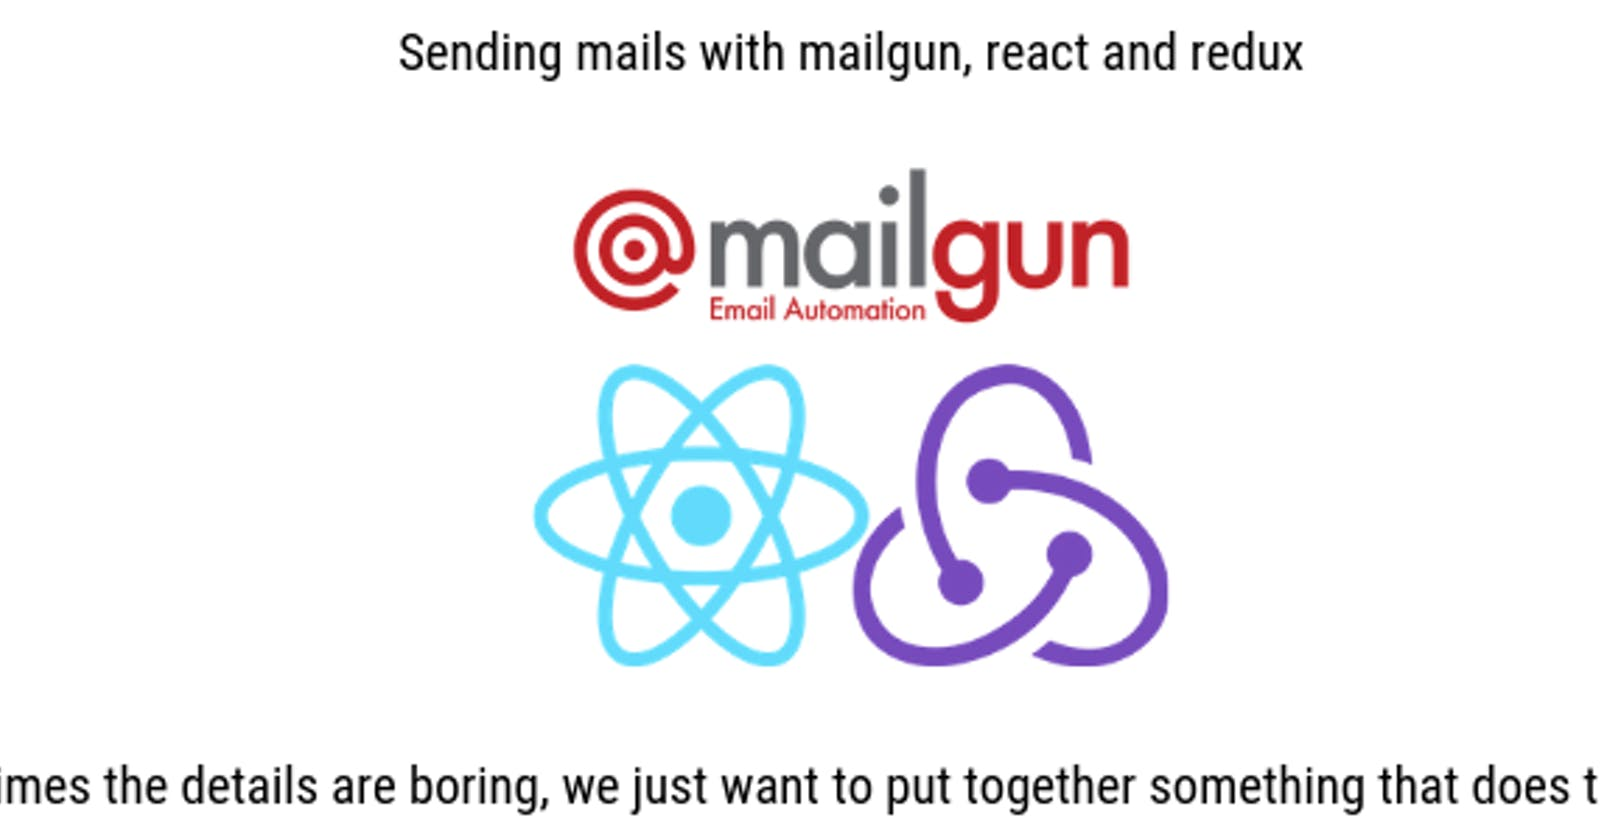 Send emails with React/Redux contact form using Mailgun Part2